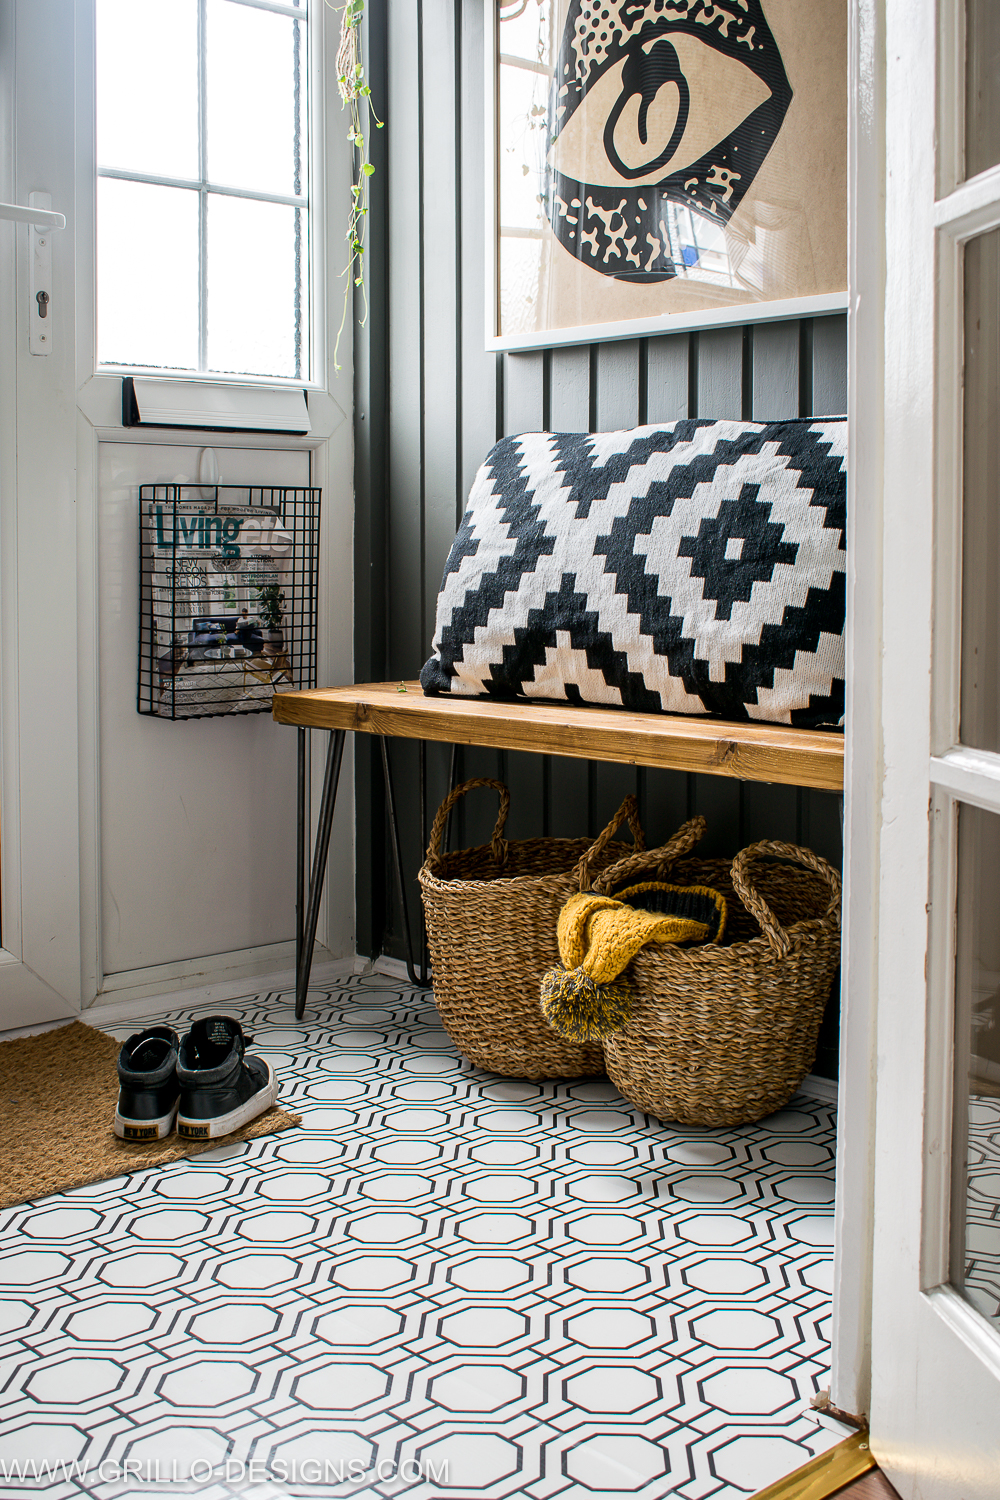 How to wallpaper a floor in a porch entrance / grillo designs